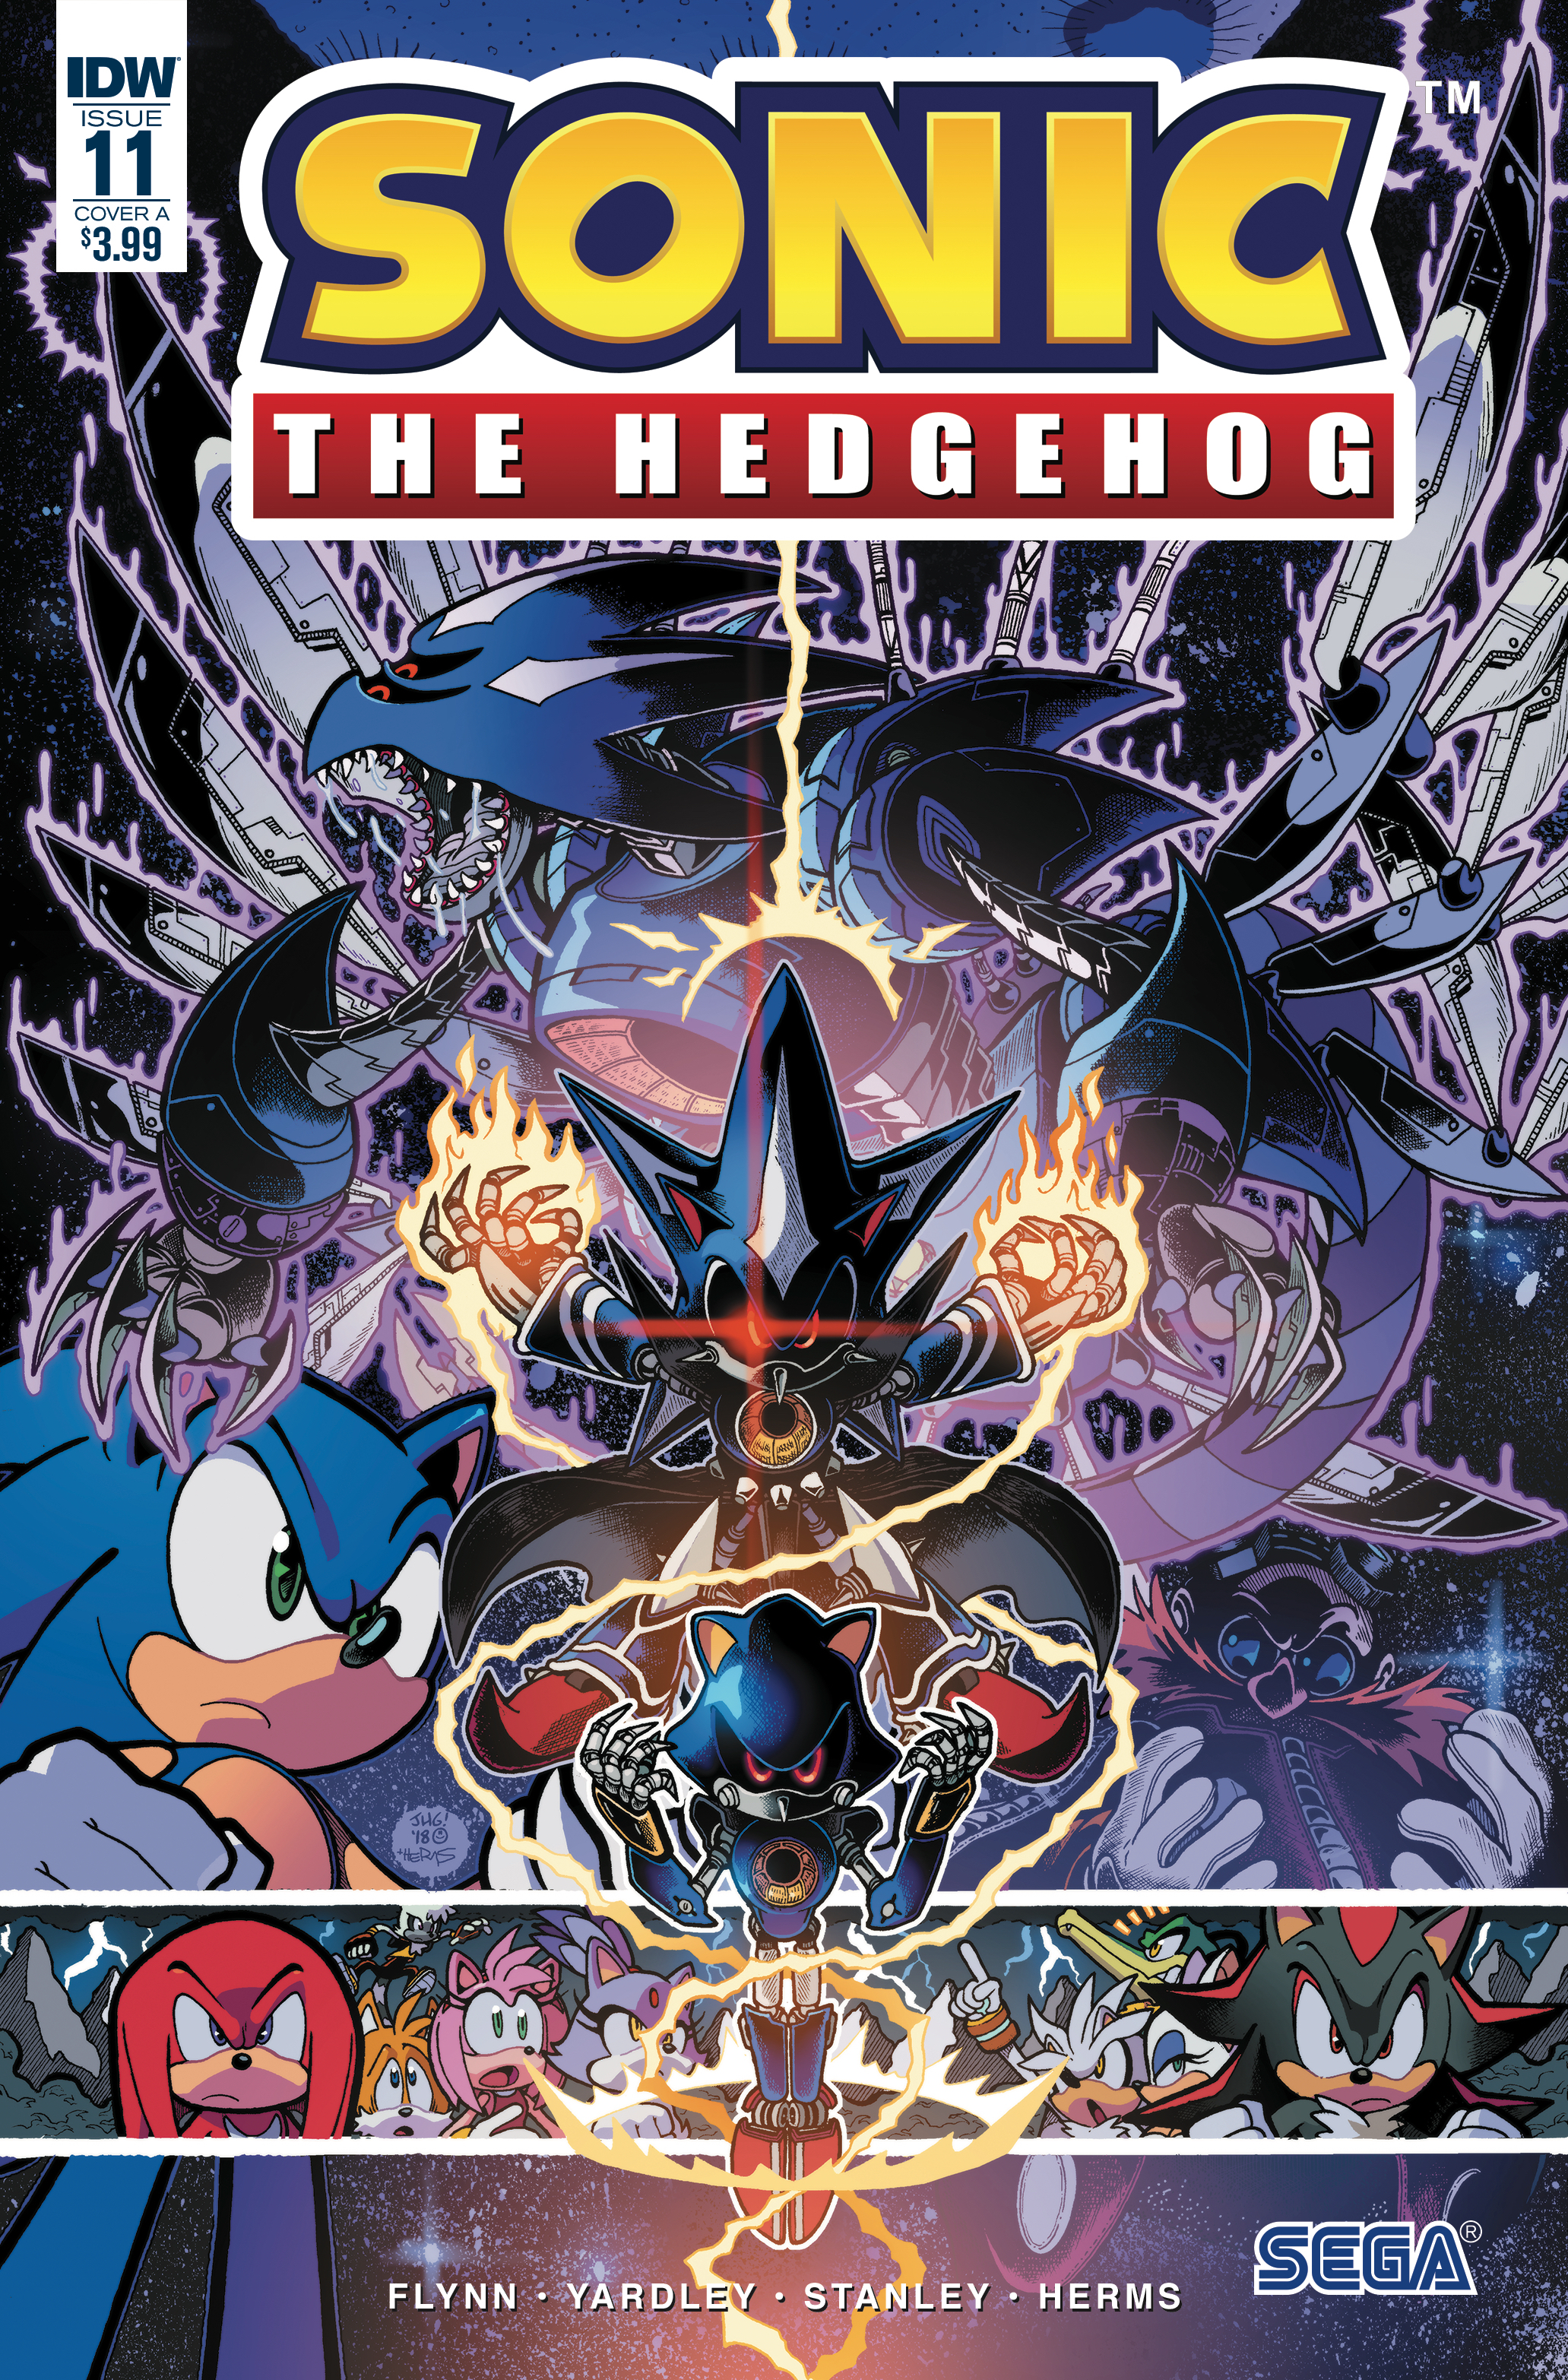 IDW Sonic the Hedgehog Issue 11